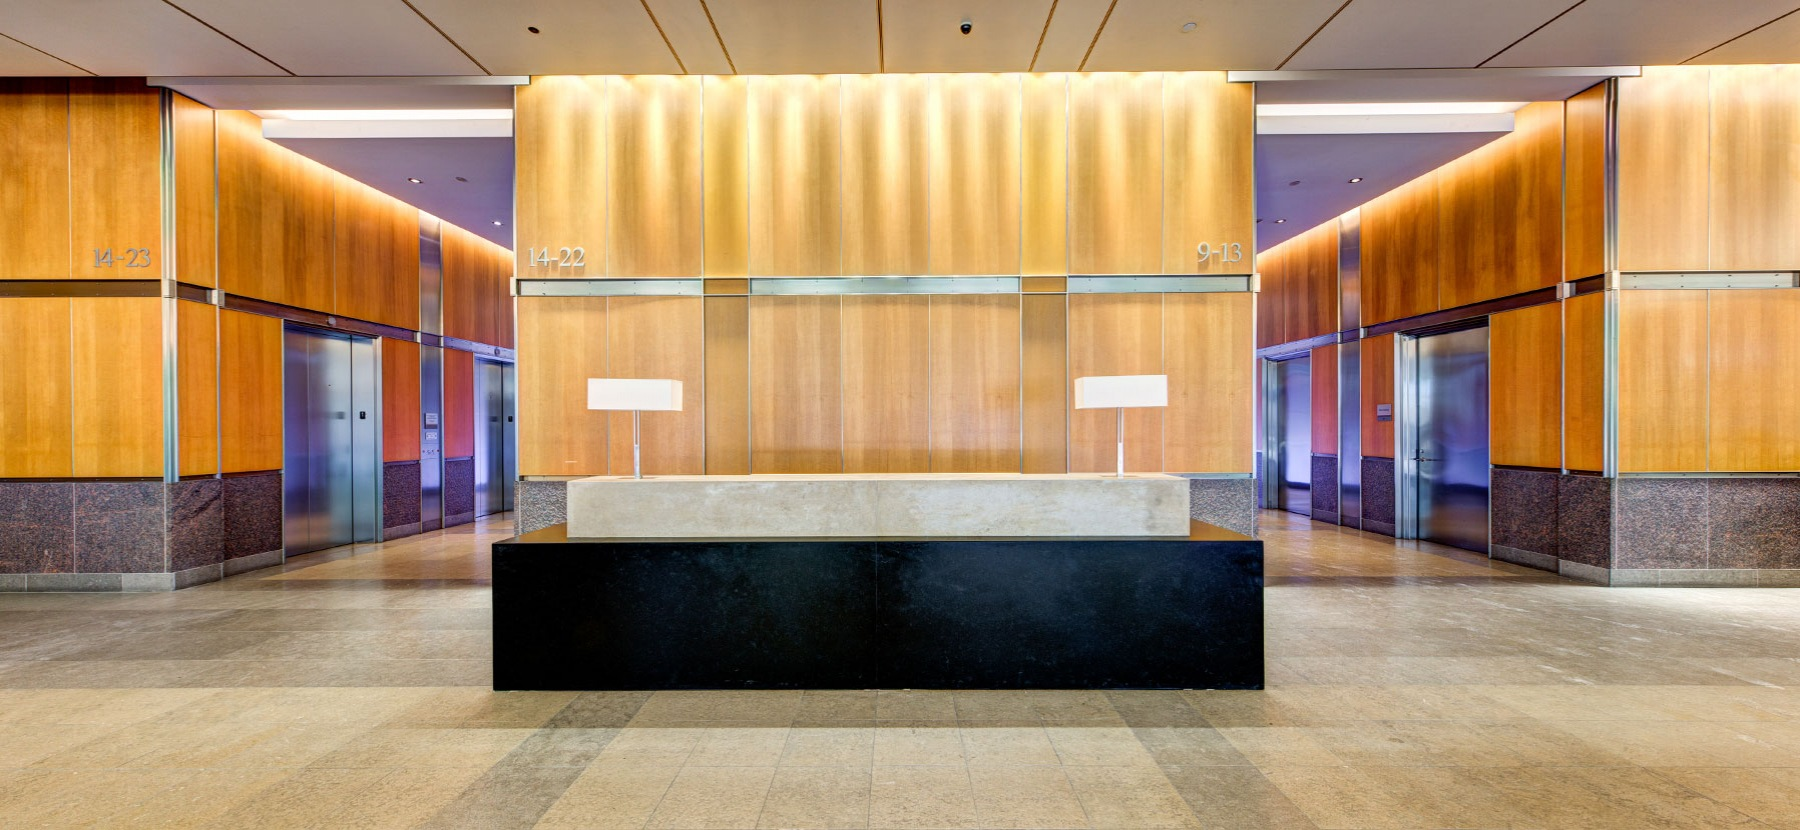 300 West Sixth Office Lobby Front Desk Group 1 Image 5